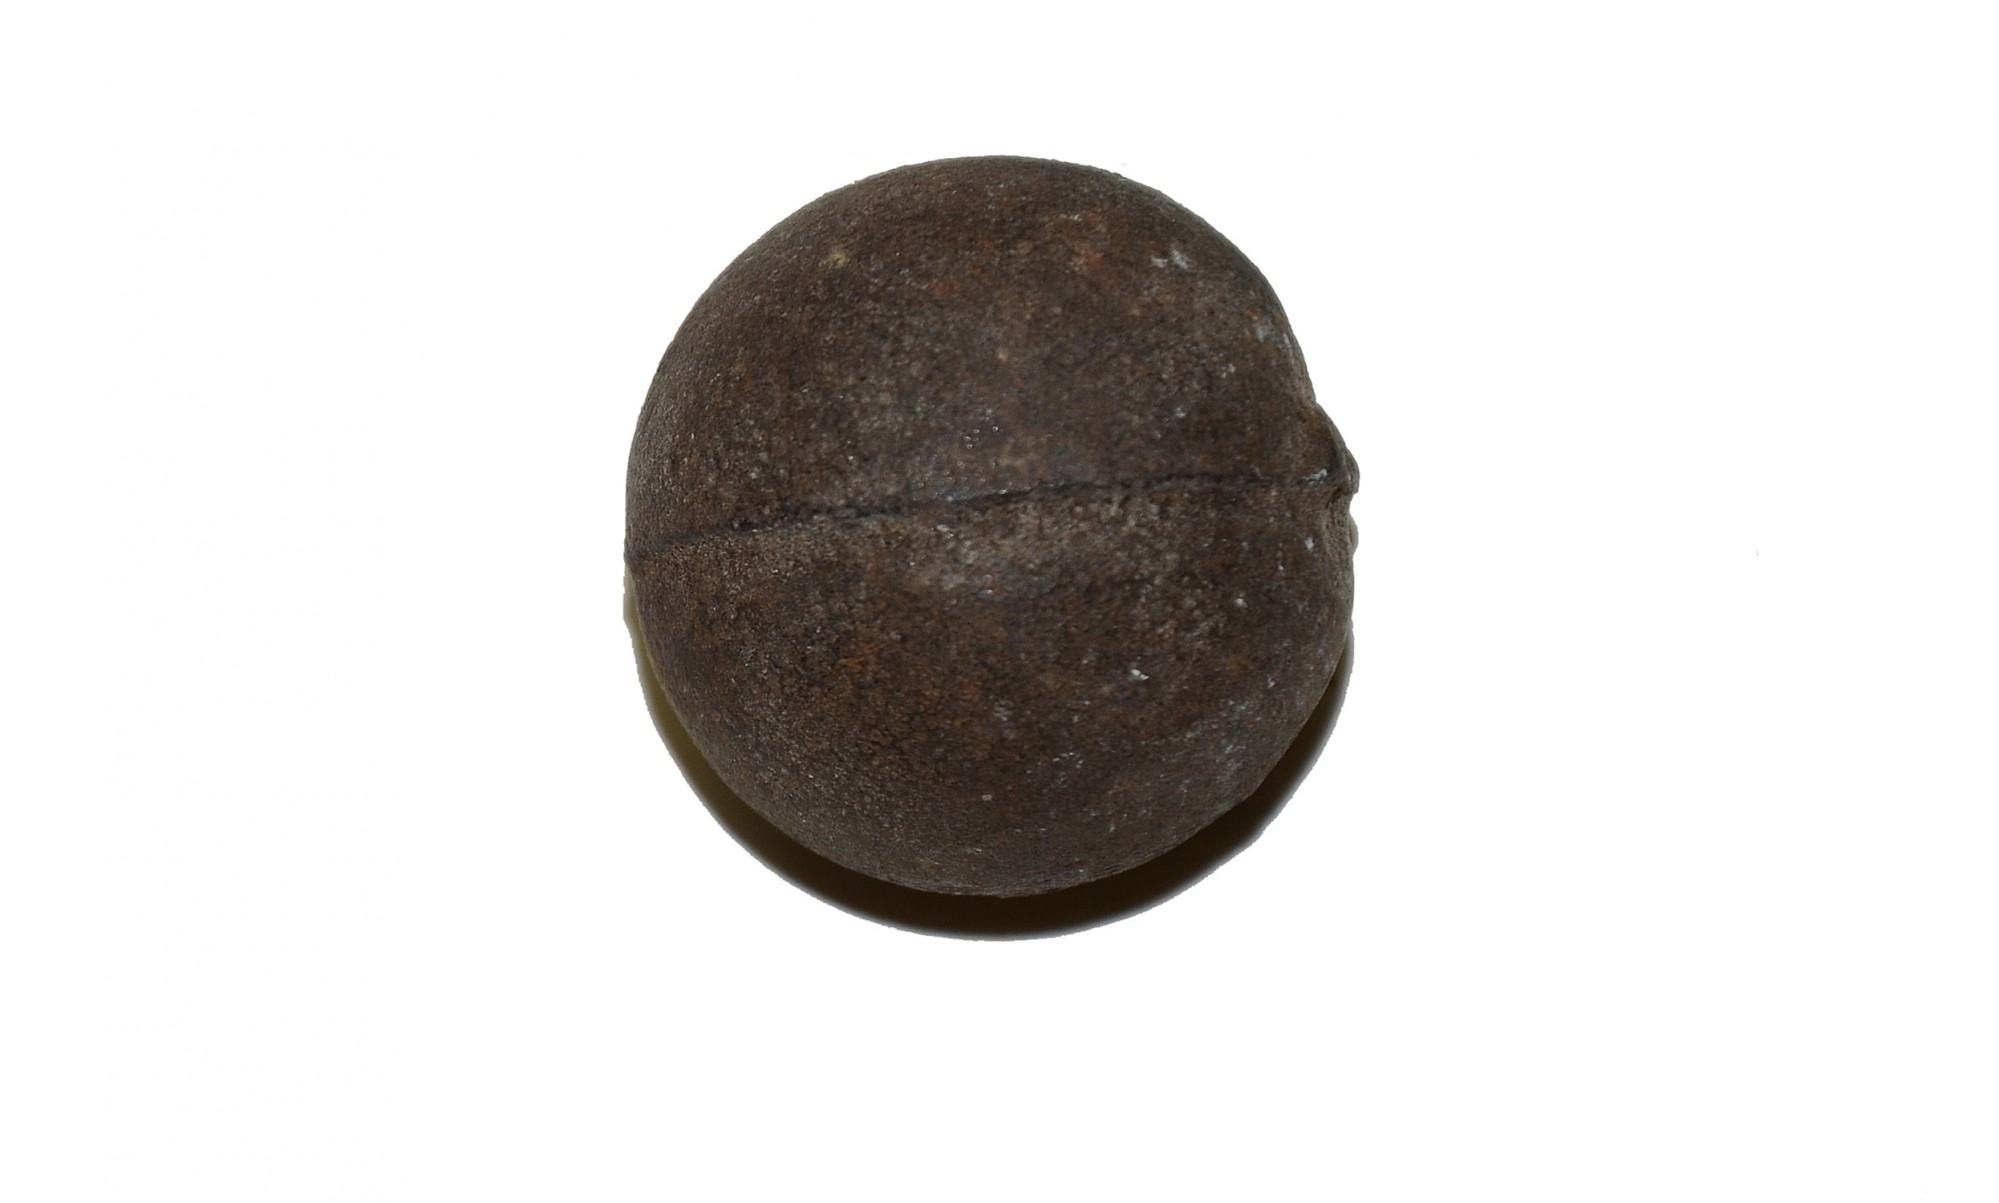 US/CS IRON 12 LB CANISTER BALL RECOVERED ON THE SHERFY FARM, GETTYSBURG